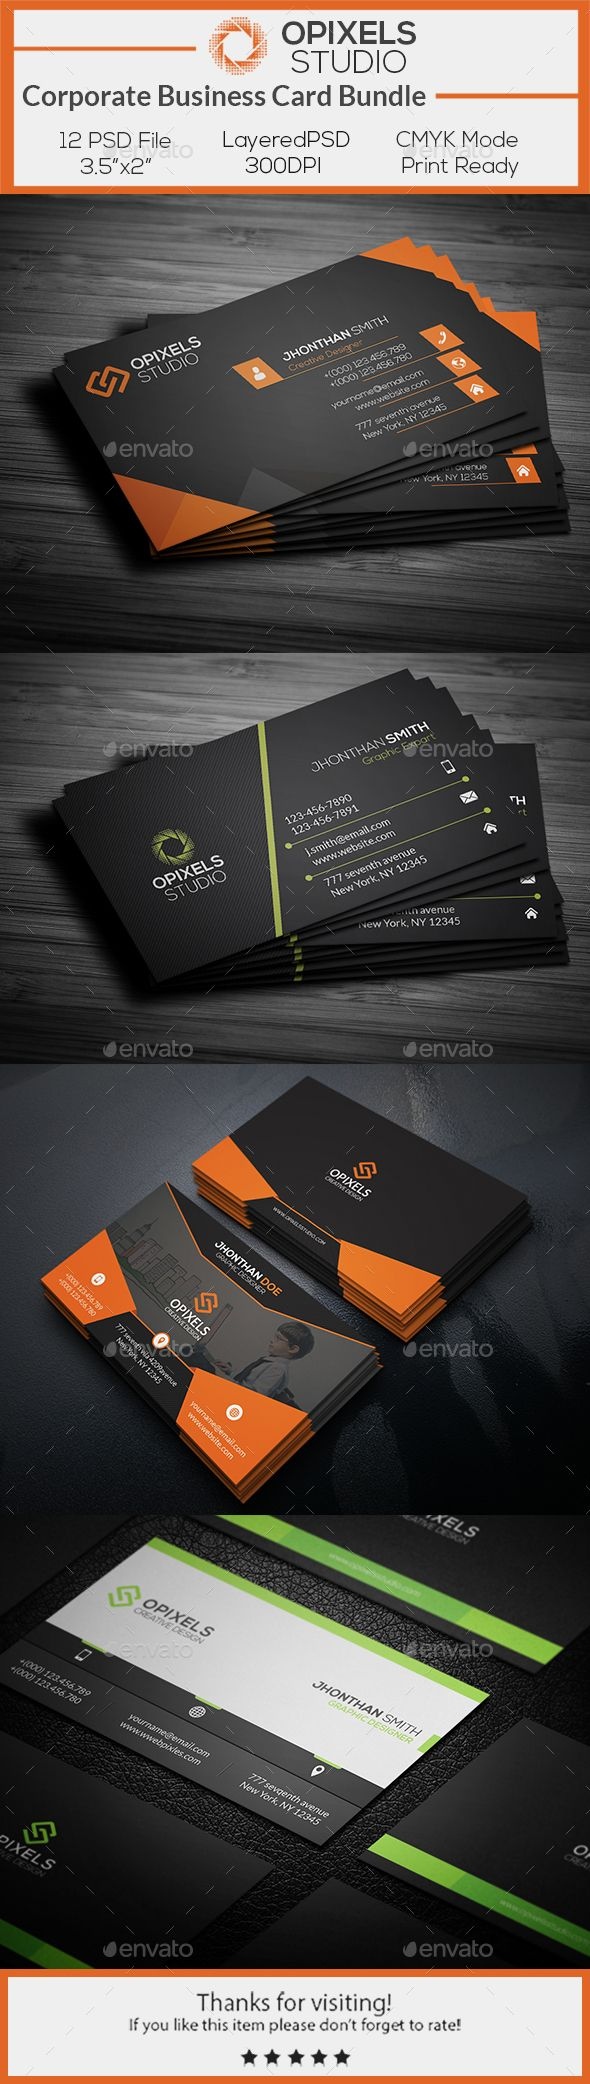 Corporate Business Card Template PSD Bundle. Download here: http://graphicriver.net/item/corporate-business-card-bundle/16837156?ref=ksioks